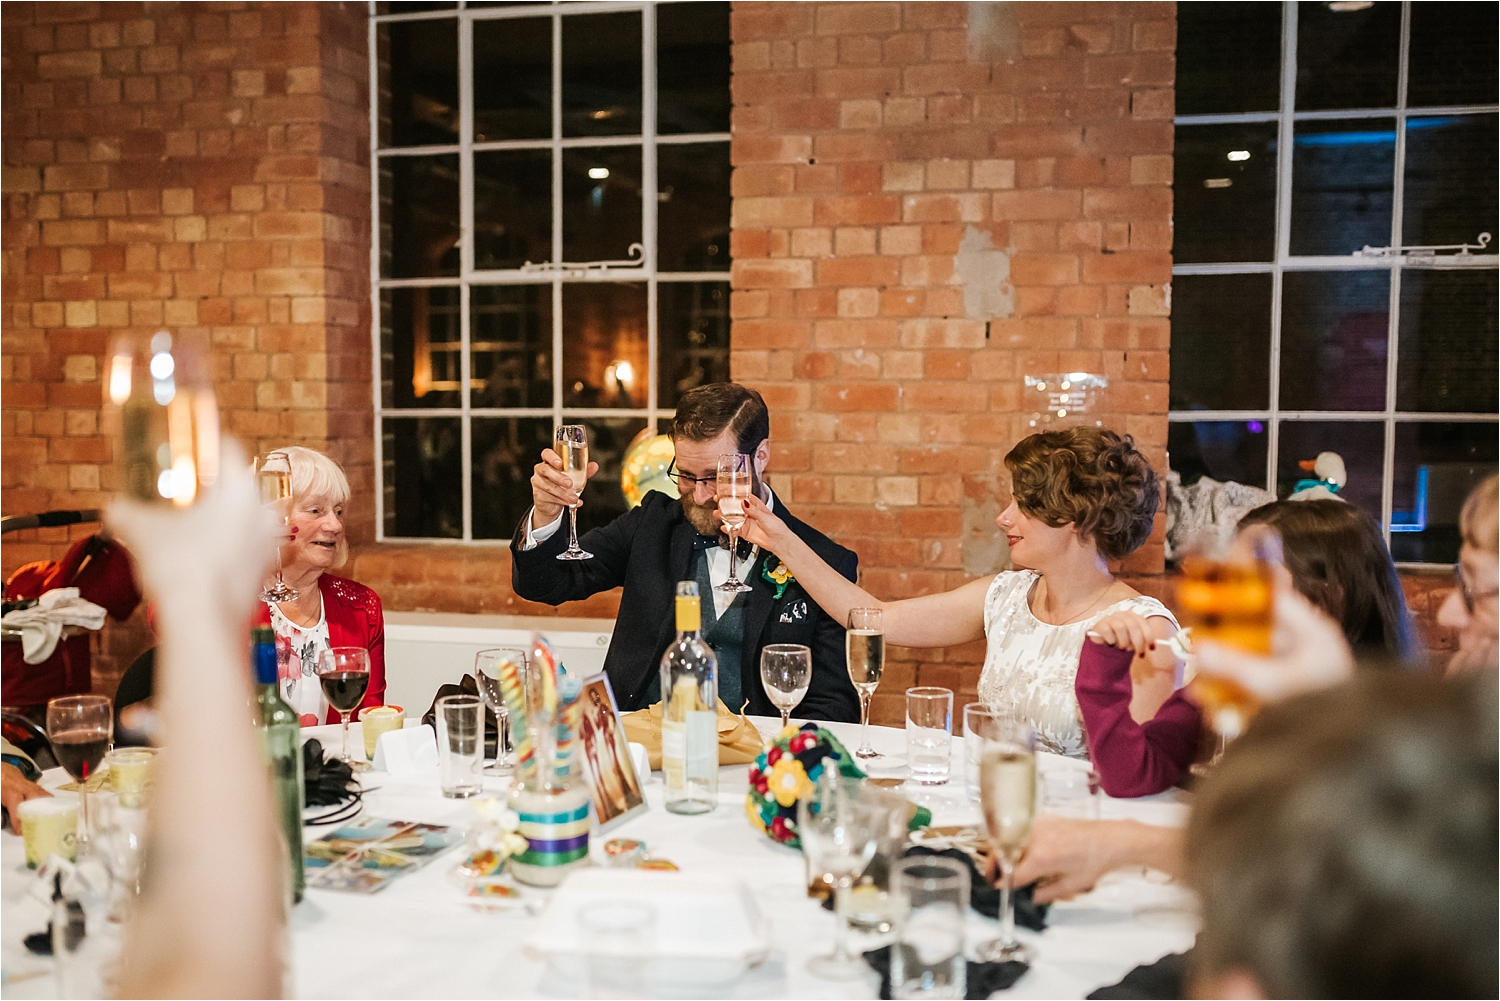 Victoria-Ben-The-West-Mill-darley-abbey-natural-relaxed-documentary-wedding-photography-photographer-Derby-Nottingham-Derbyshire-Nottinghamshire-Leicestershire-Lincolnshire-East-Midlands_0175.jpg